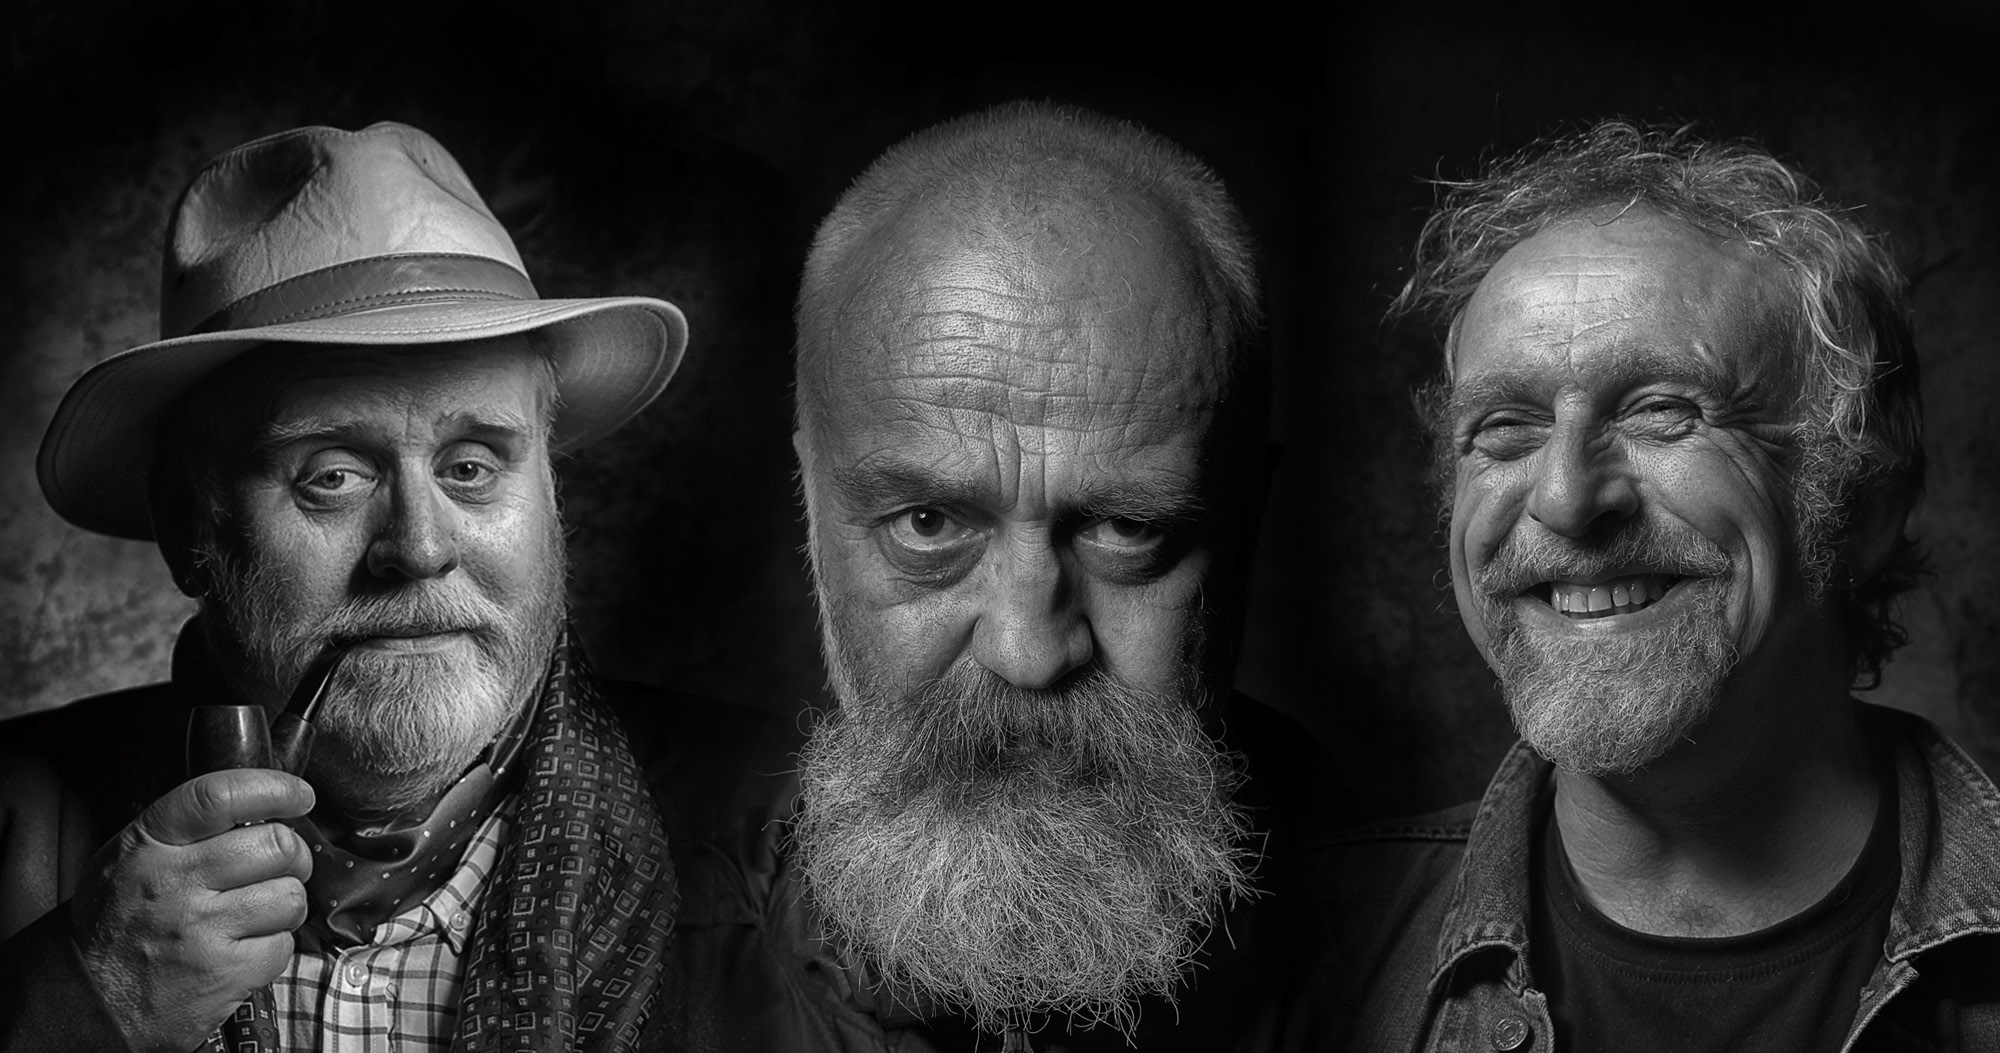 Award-winning photographer launches exhibition on faces of Wycombe